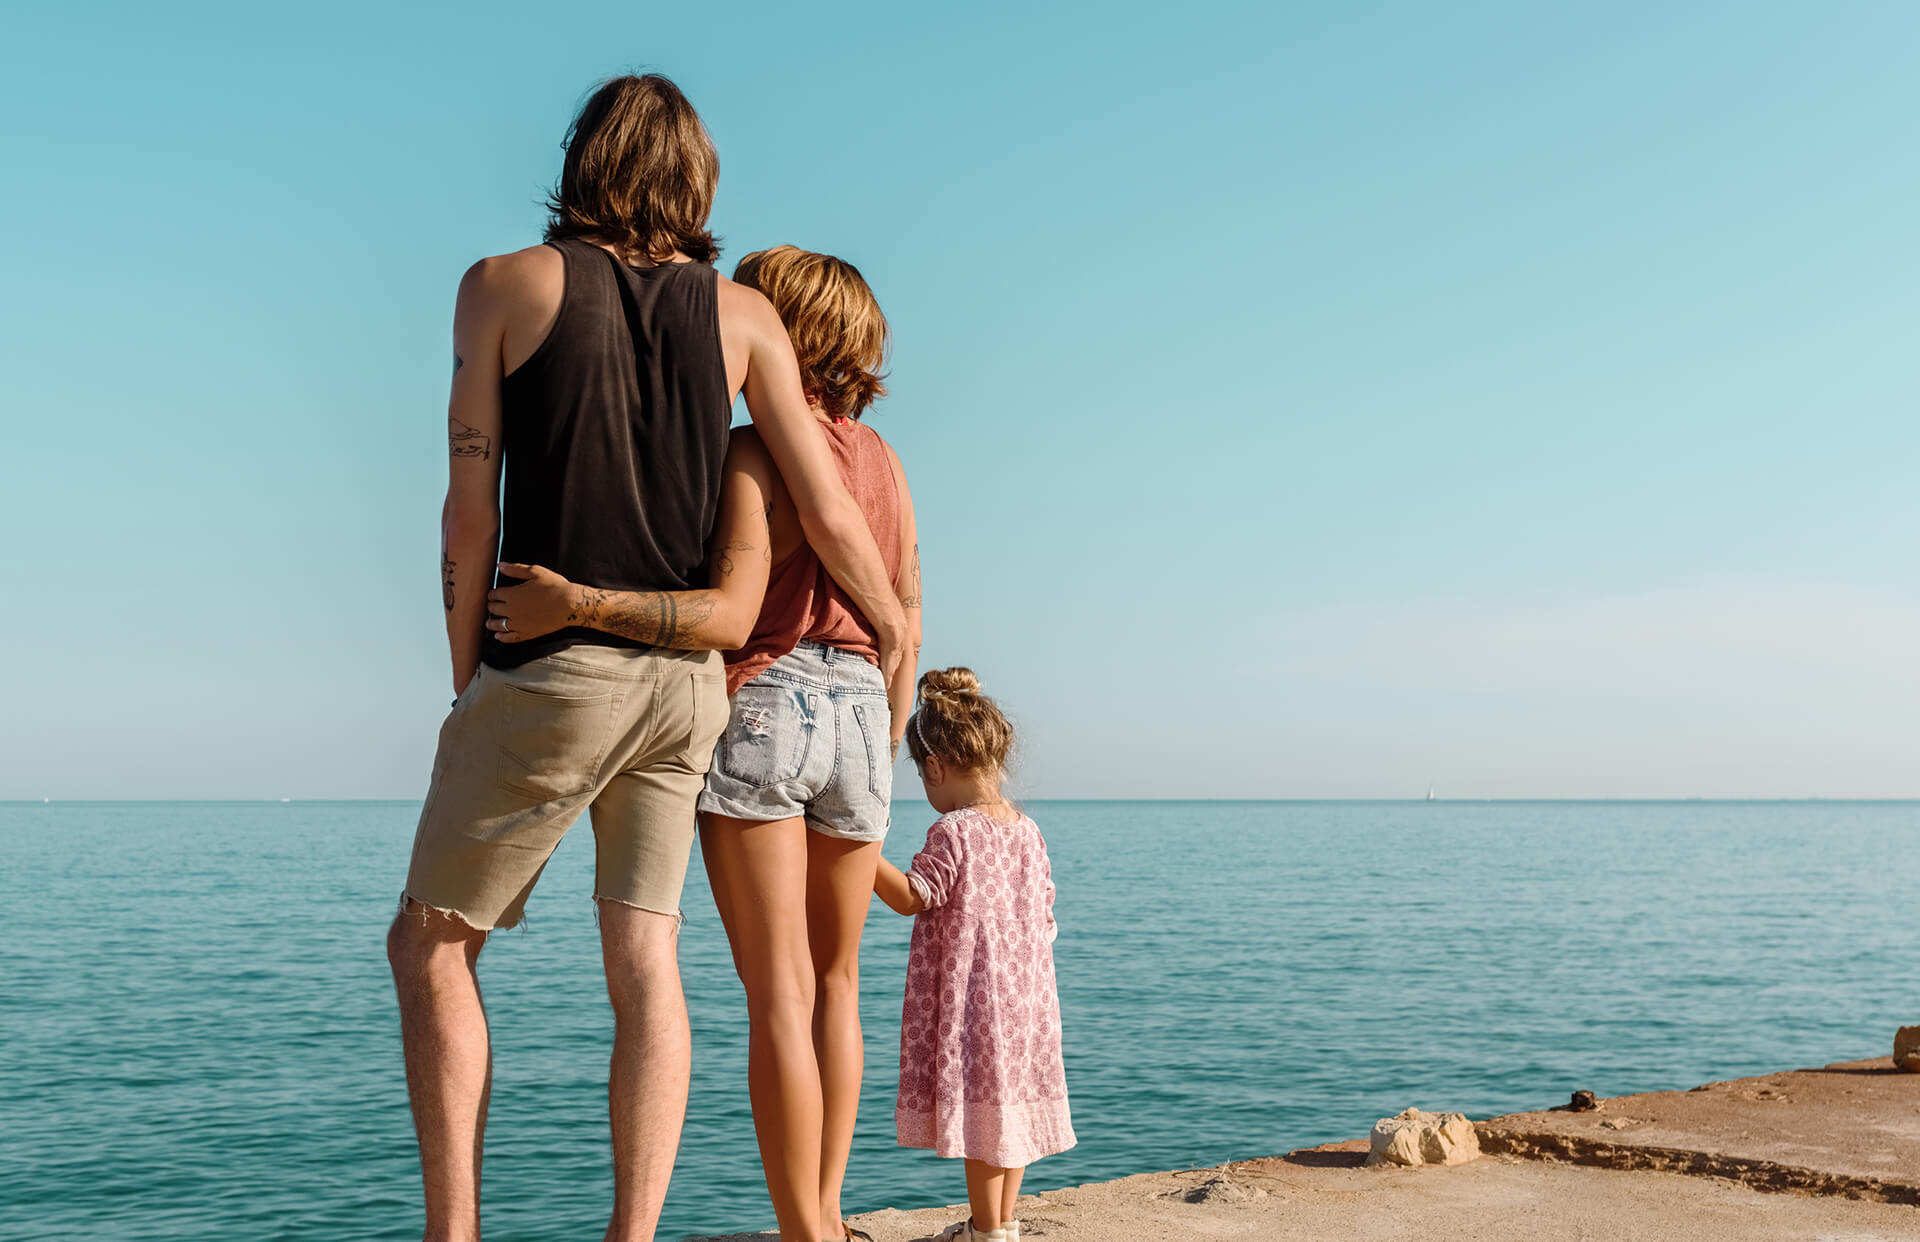 Embracing couple with their young daughter standing on concrete seafront in sunlight